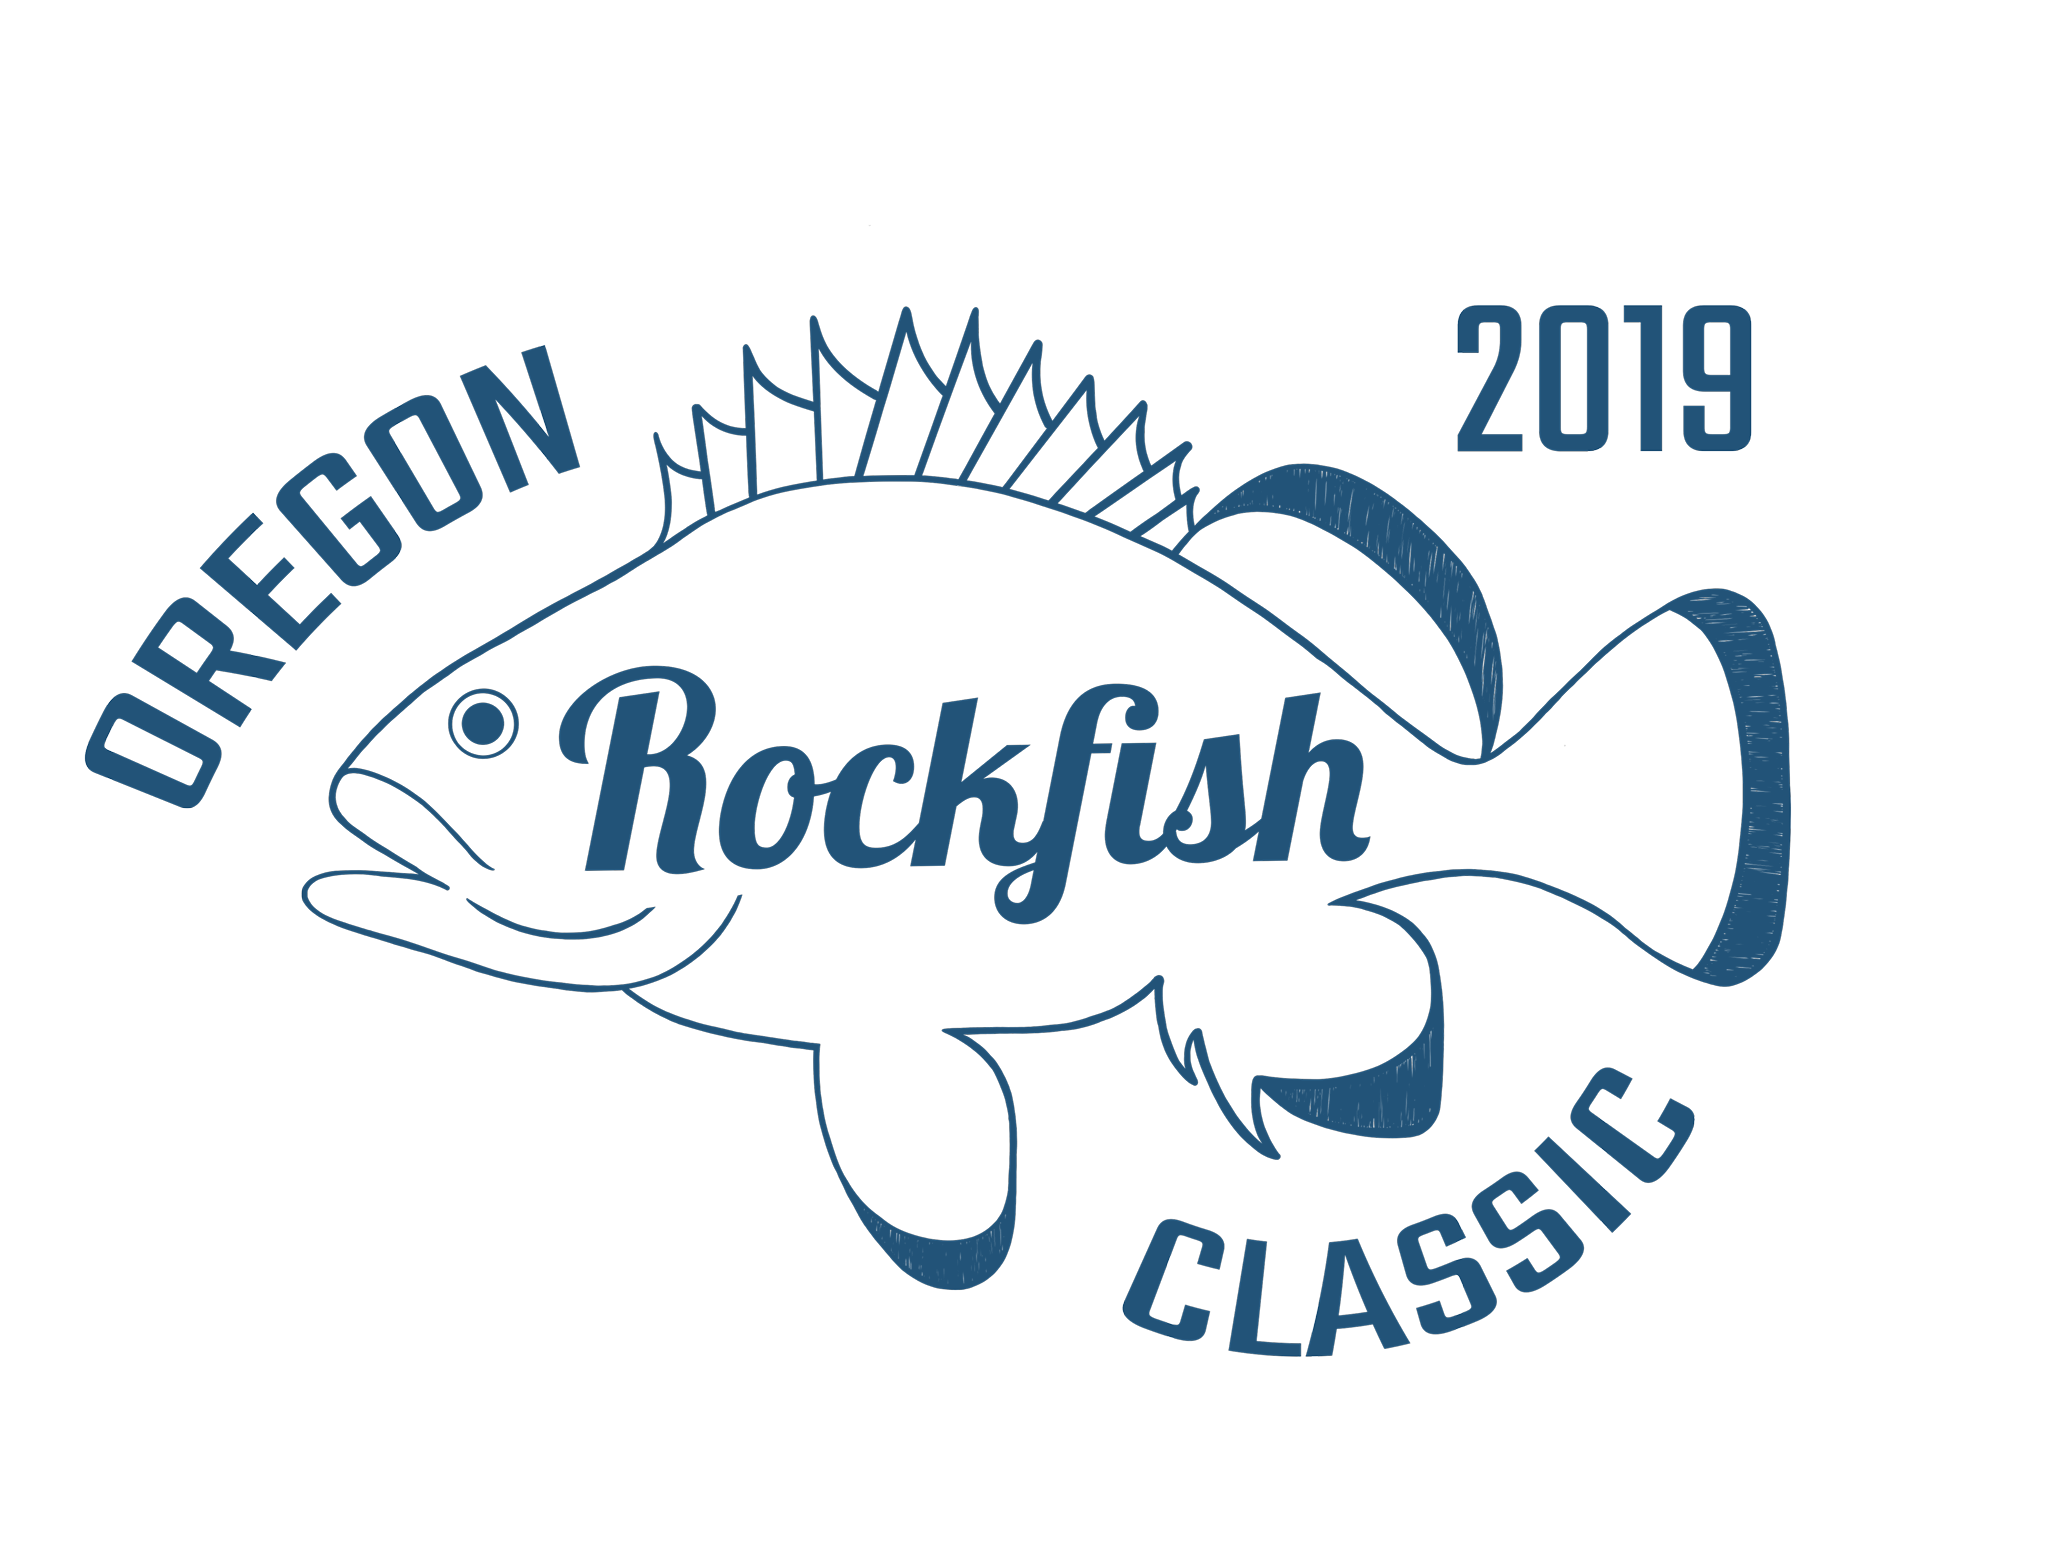 OFFICIAL OREGON ROCKFISH CLASSIC 2019 RULES *****